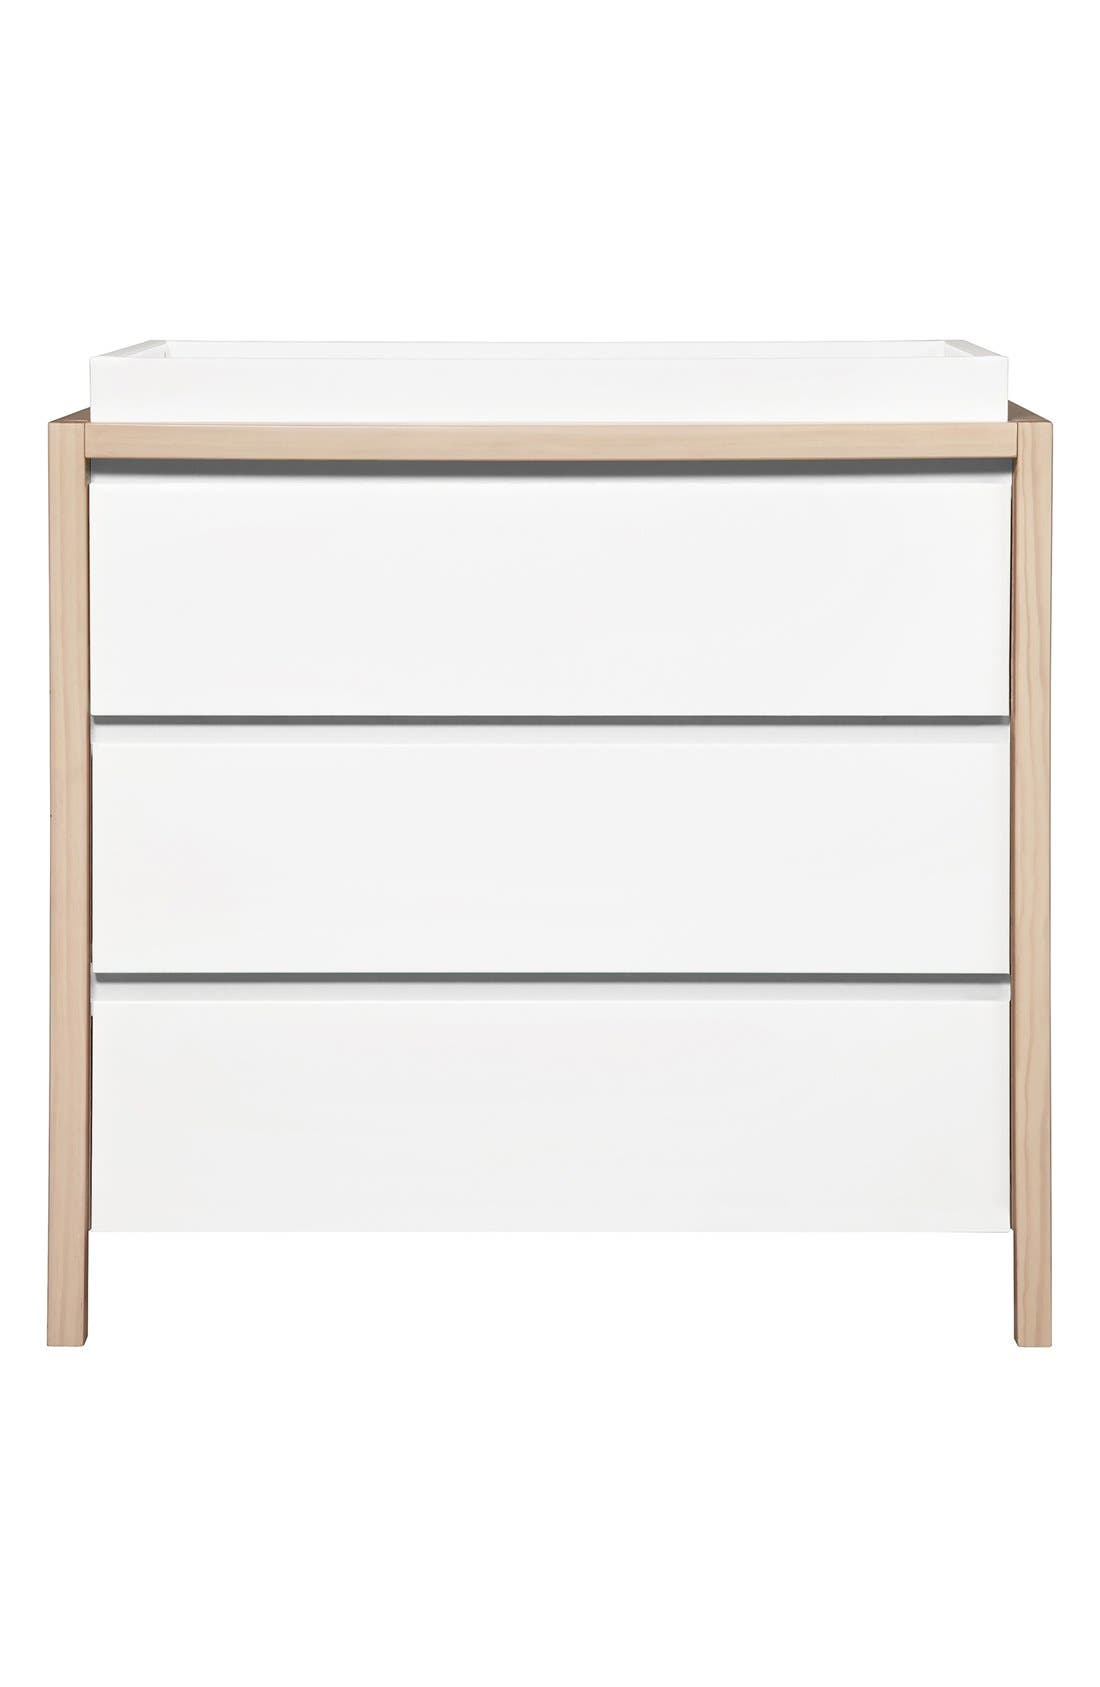 babyletto 'Bingo' Three Drawer Changer Dresser